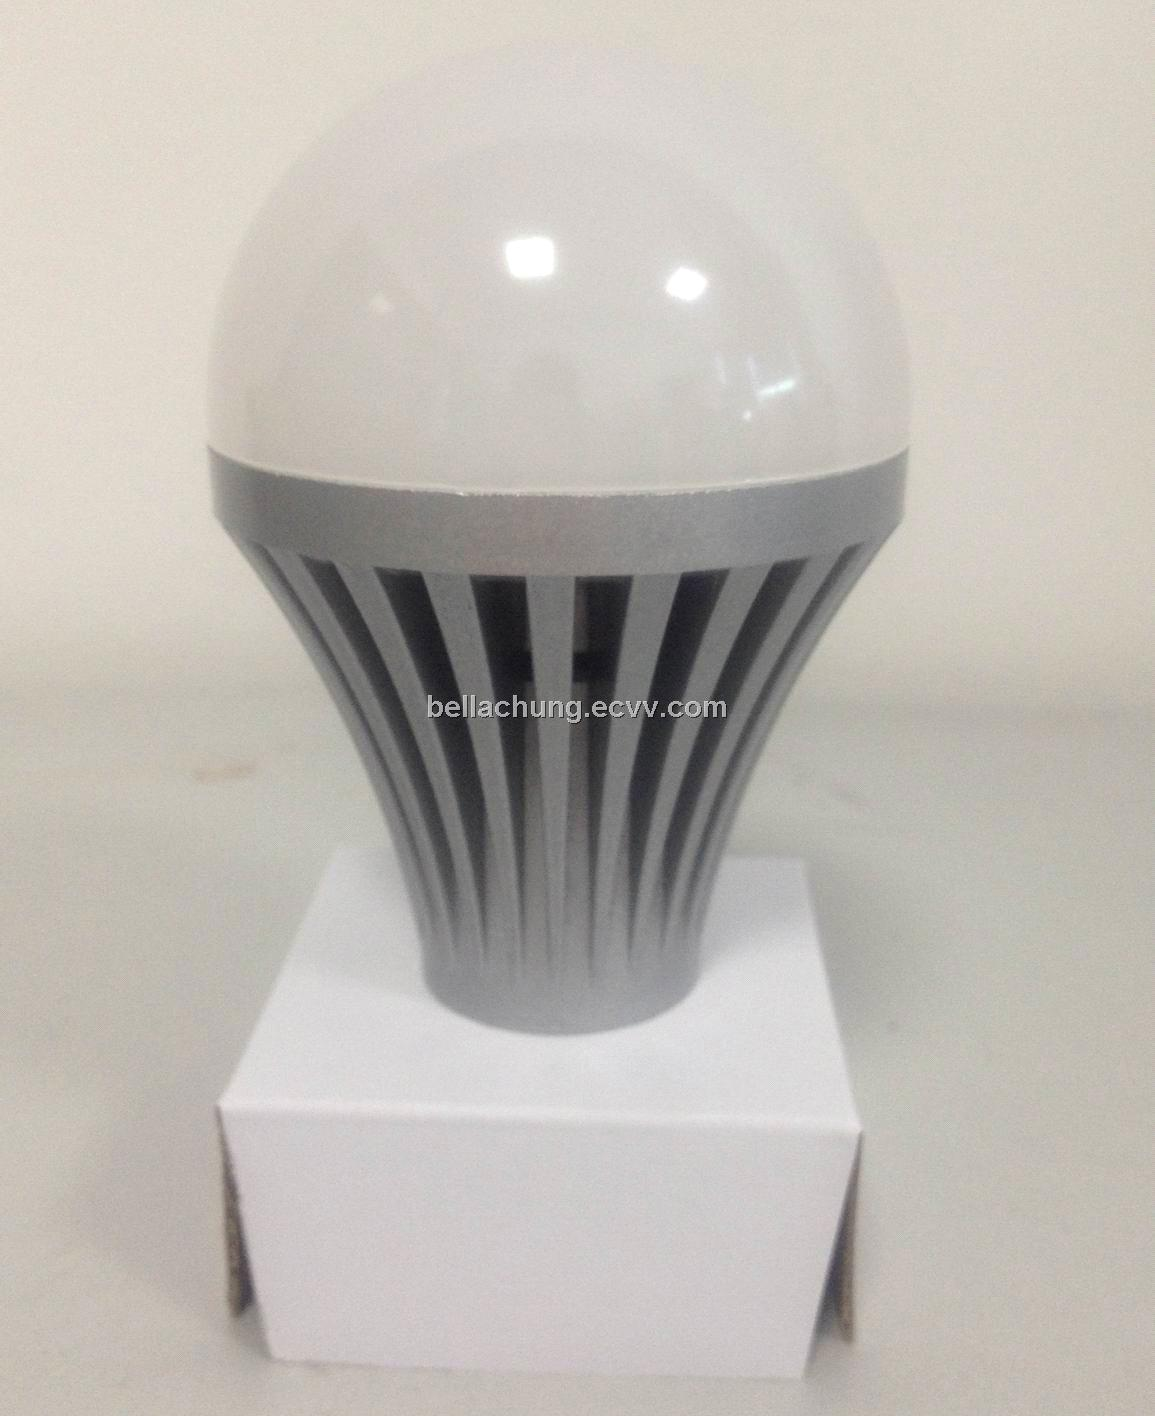 9w LED bulb light G60, E27/ B22 base,700lm,SMD5630, AC85-265V input voltage